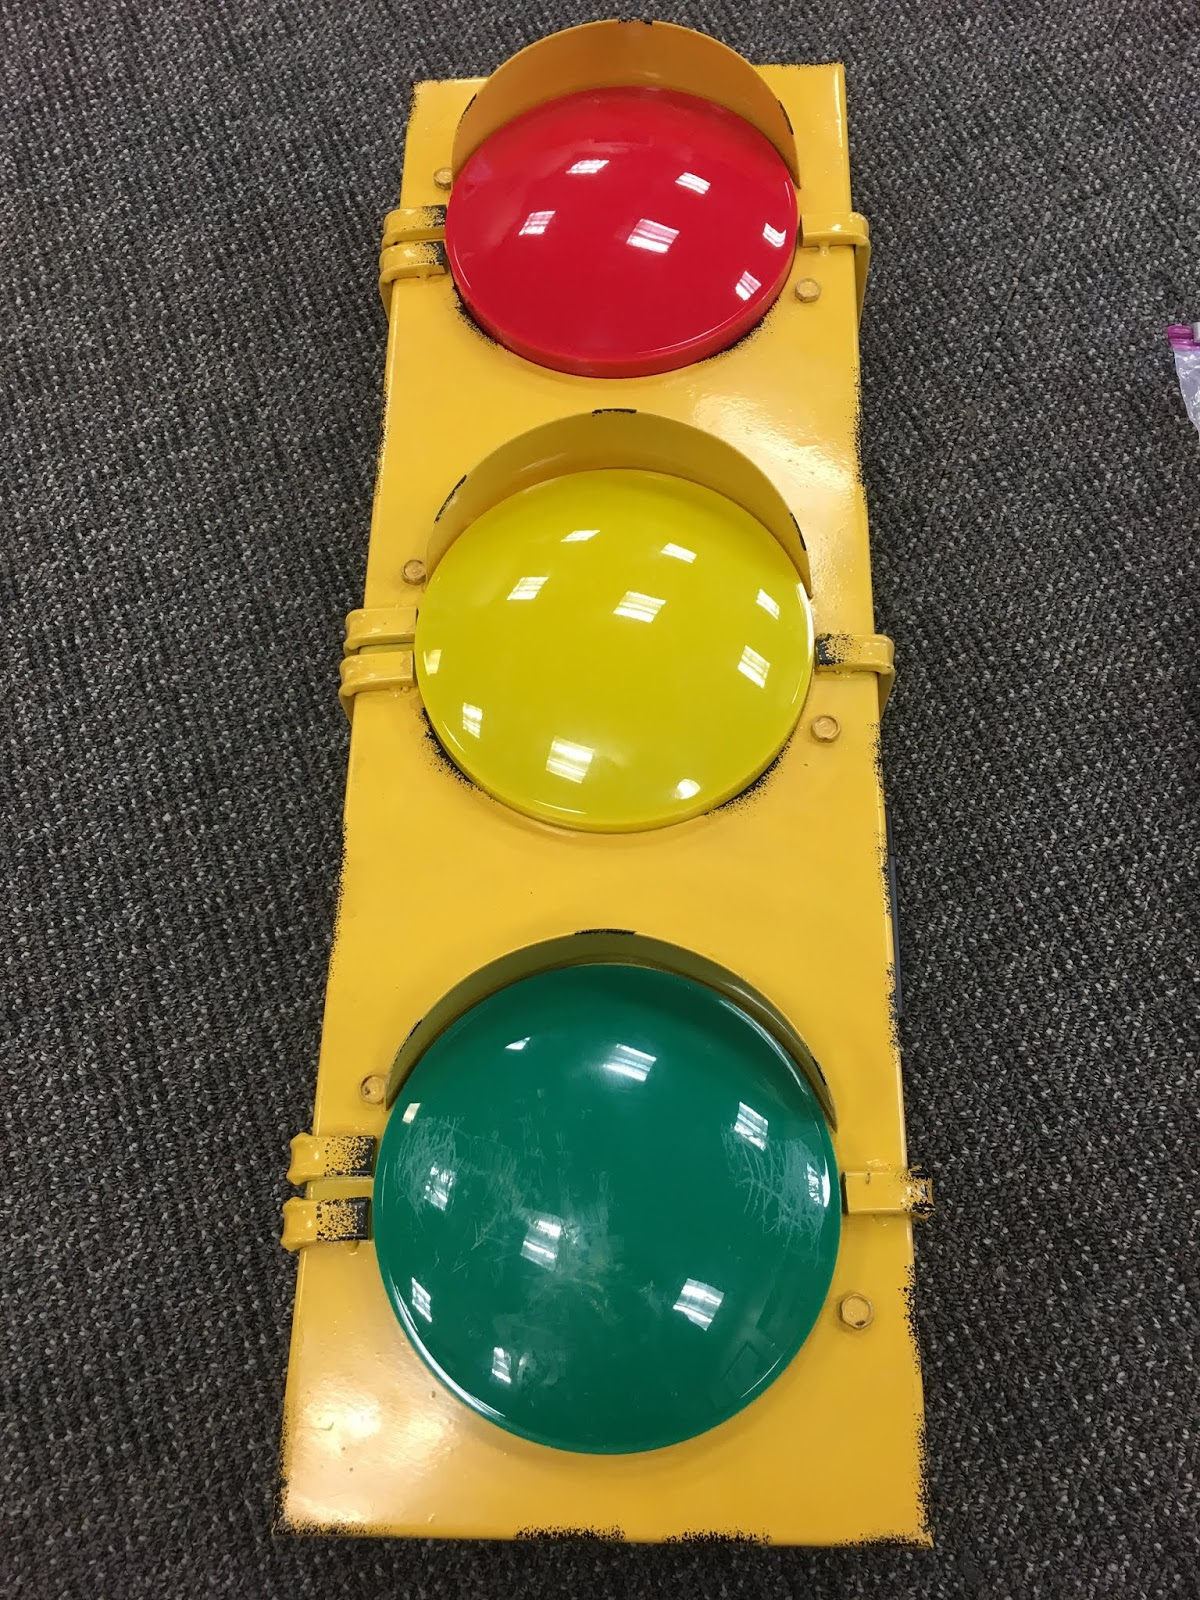 a photo of the toy street light from the kit